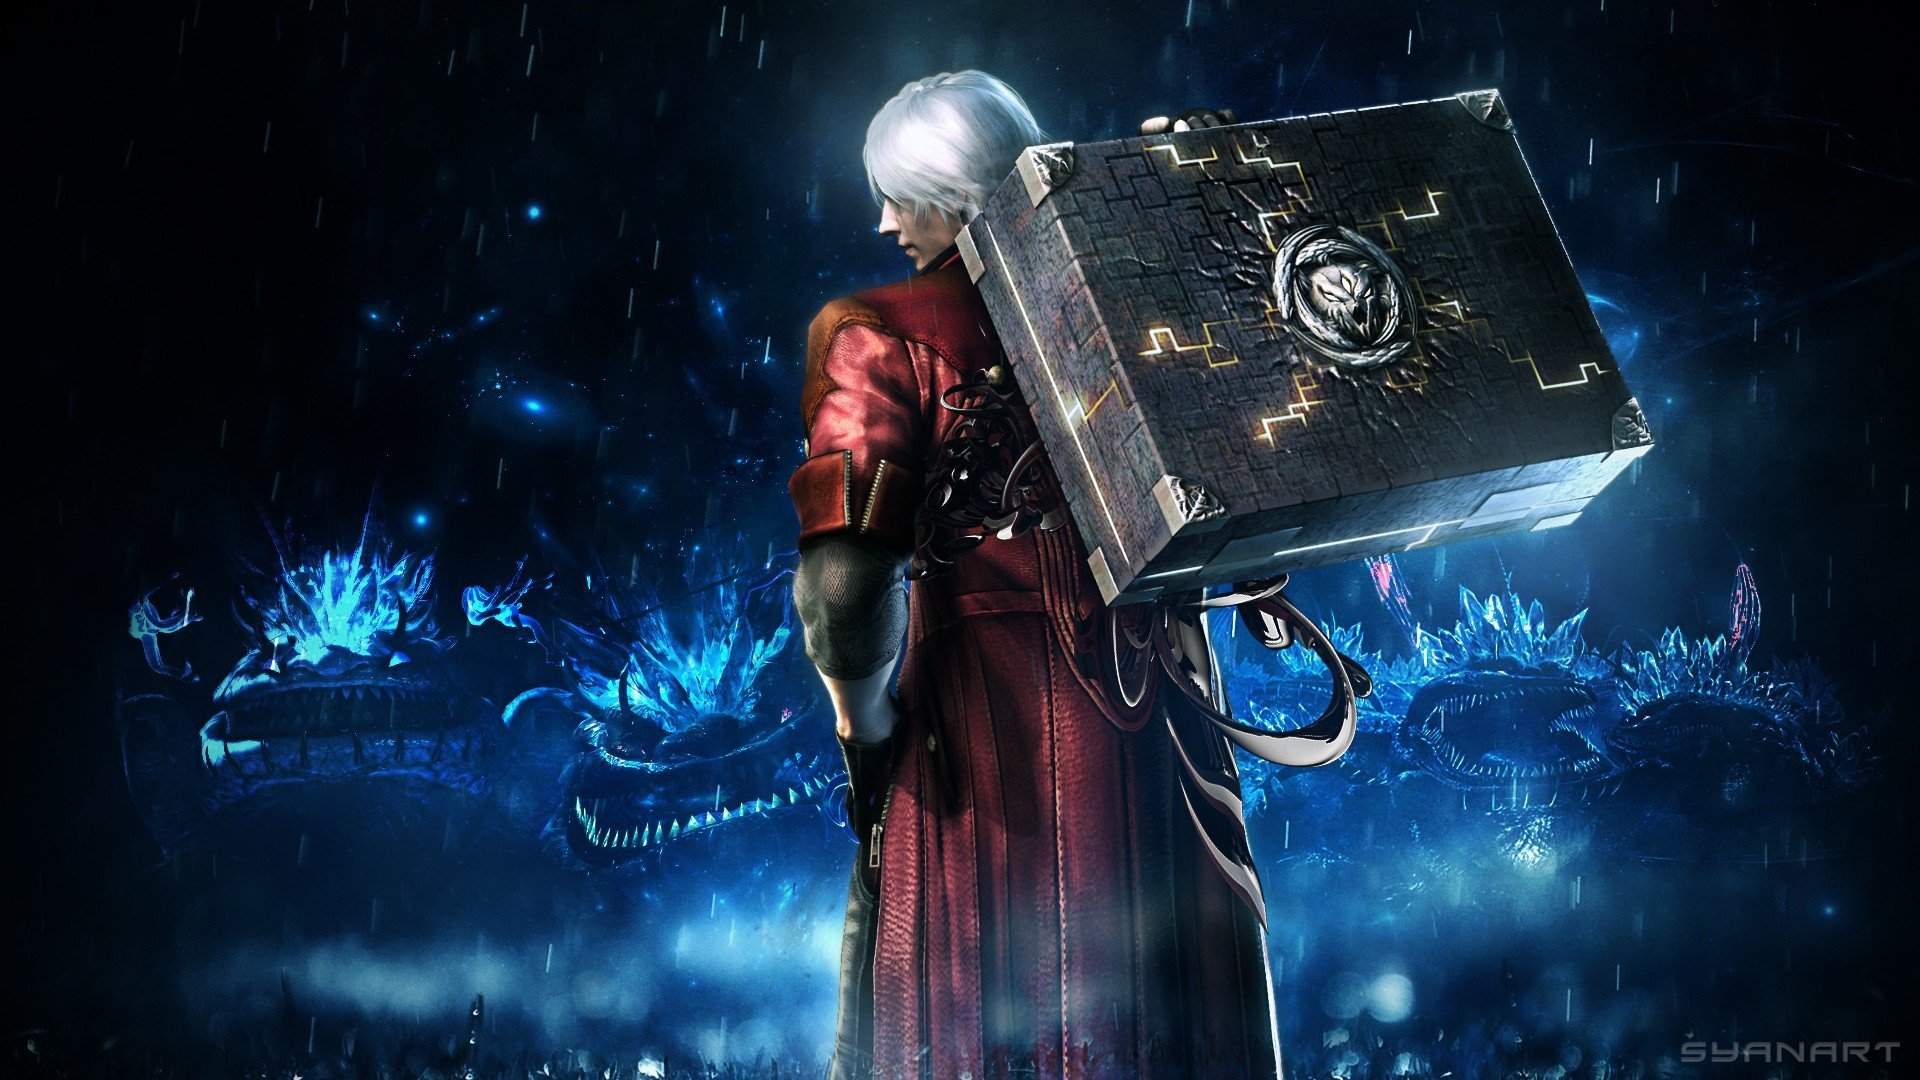 Dante Devil May Cry Dmc Devil May Cry Hd Wallpapers Desktop